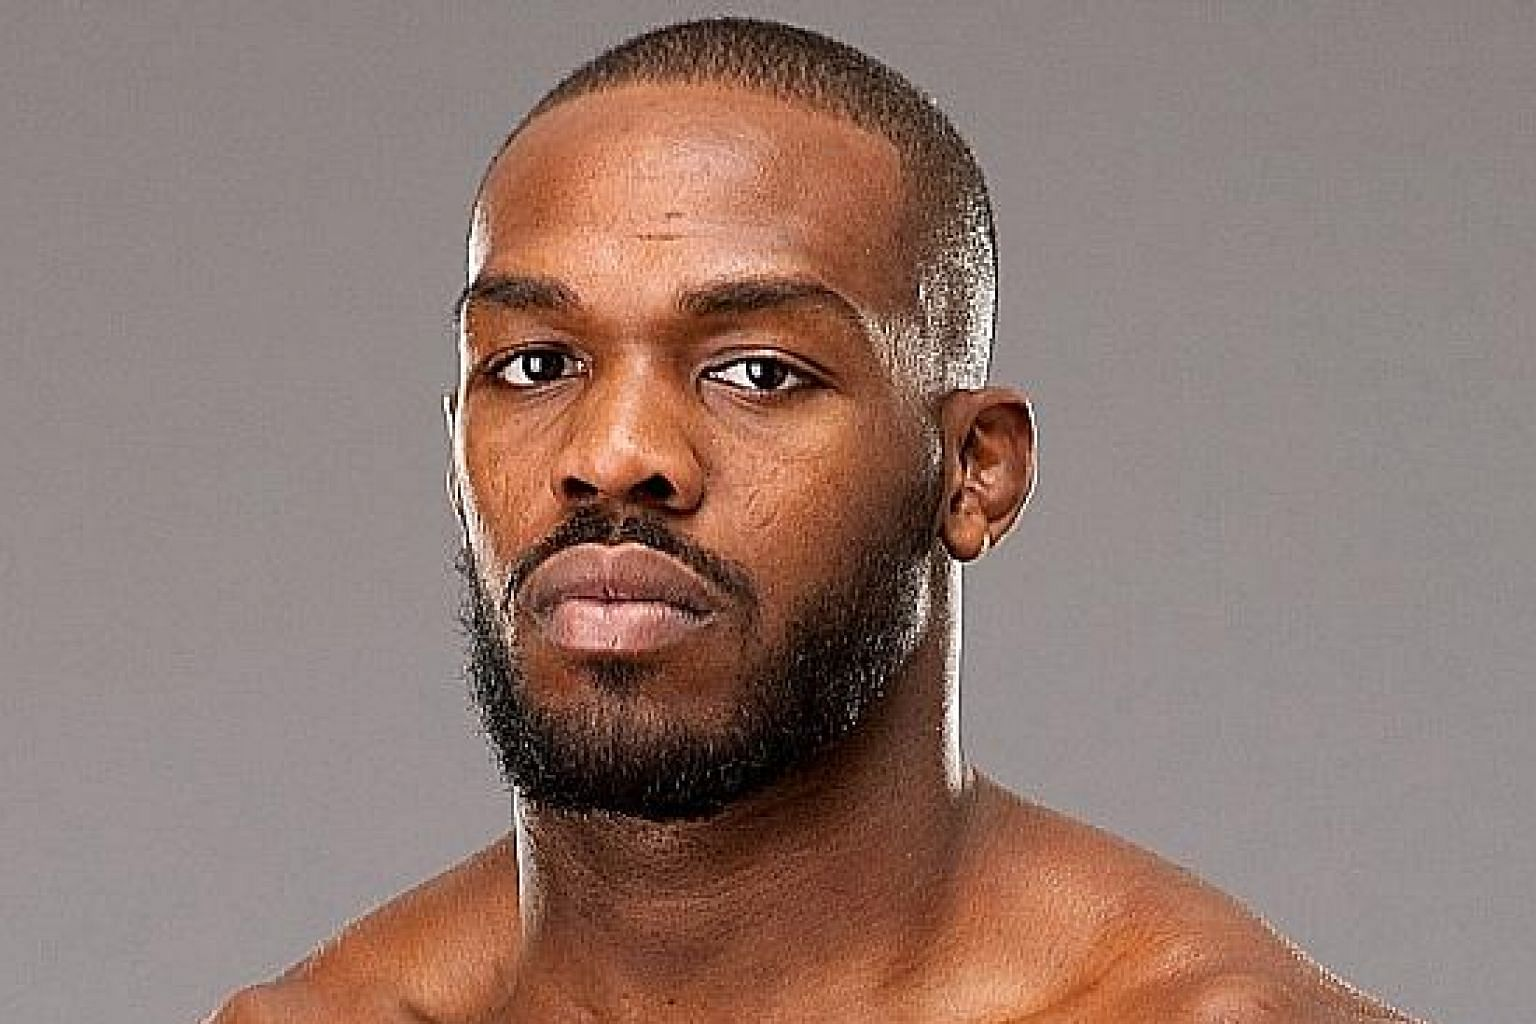 Jon Jones has been the dominant force in the light heavyweight division for almost a decade.